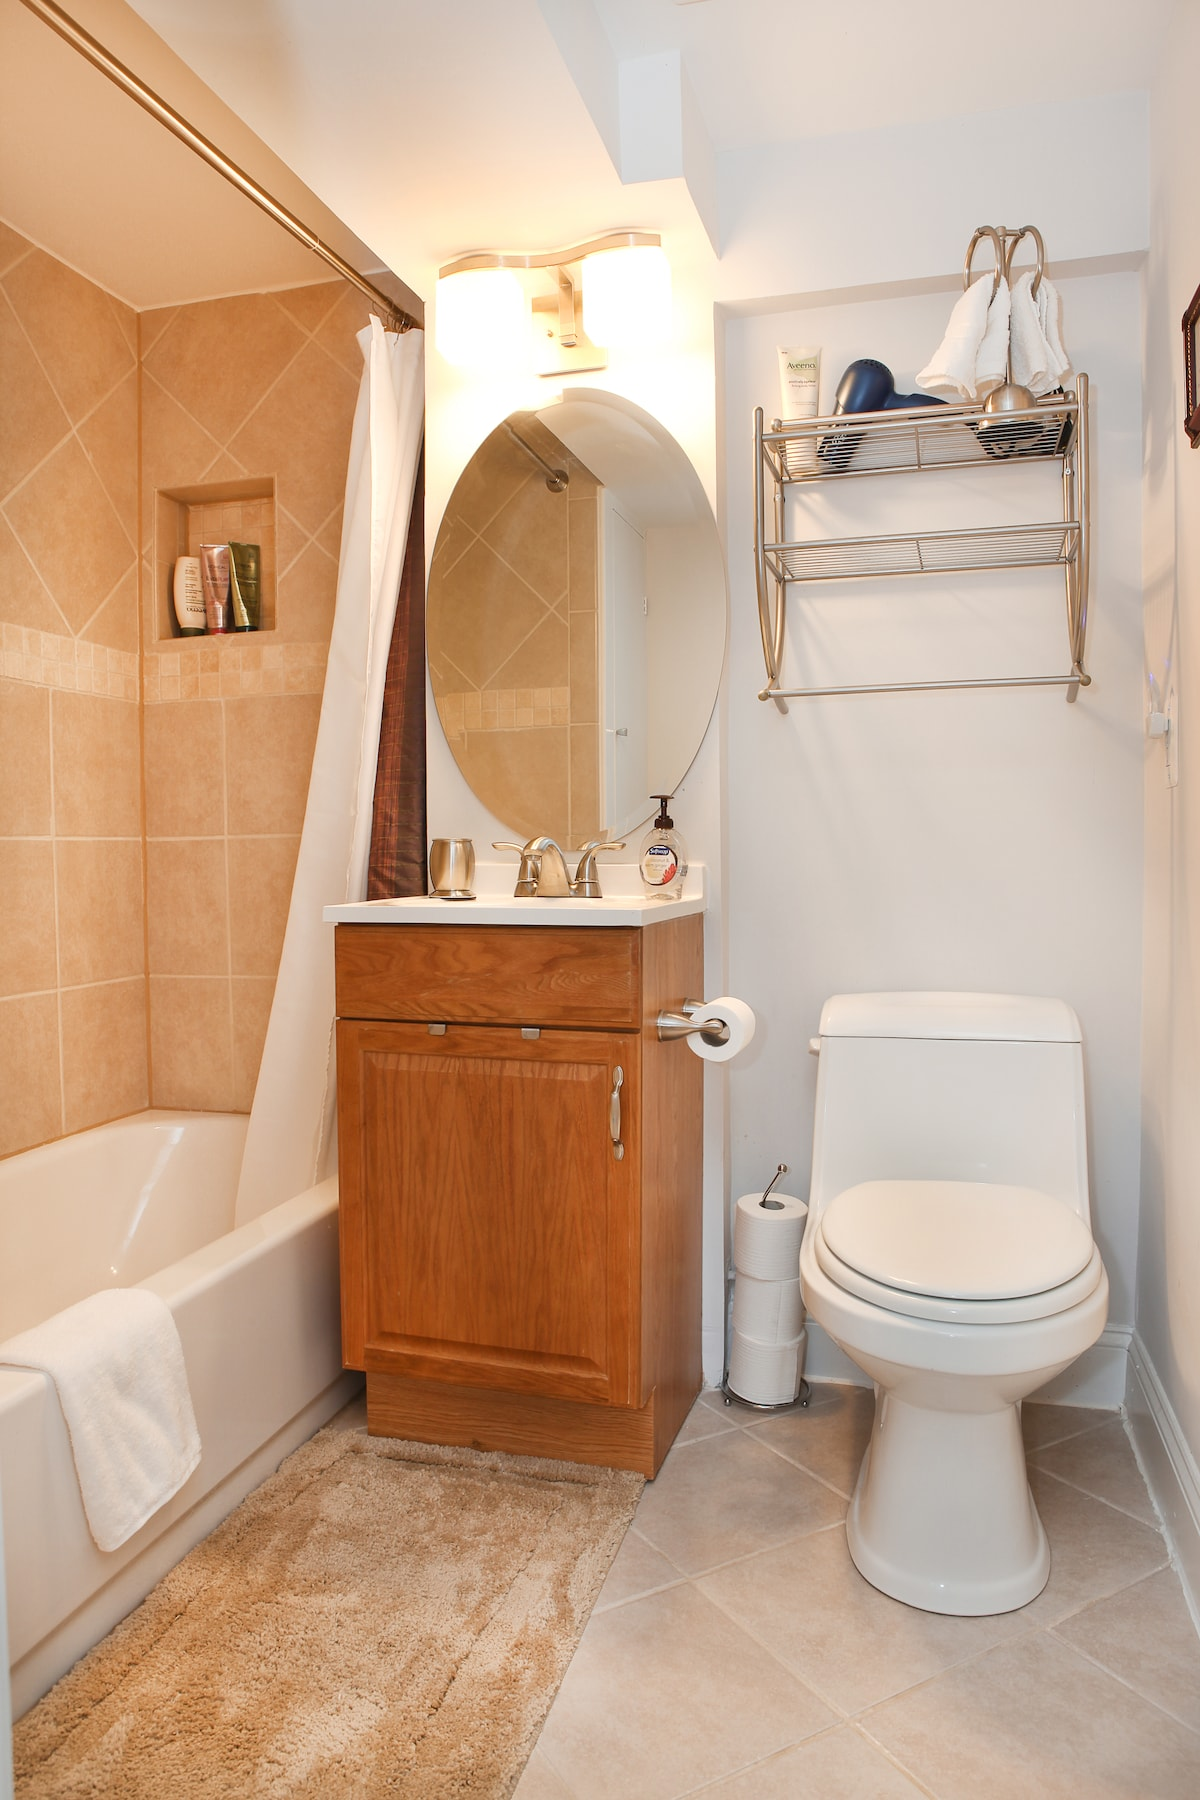 Well appointed clean and freshly renovated guest's private bathroom.